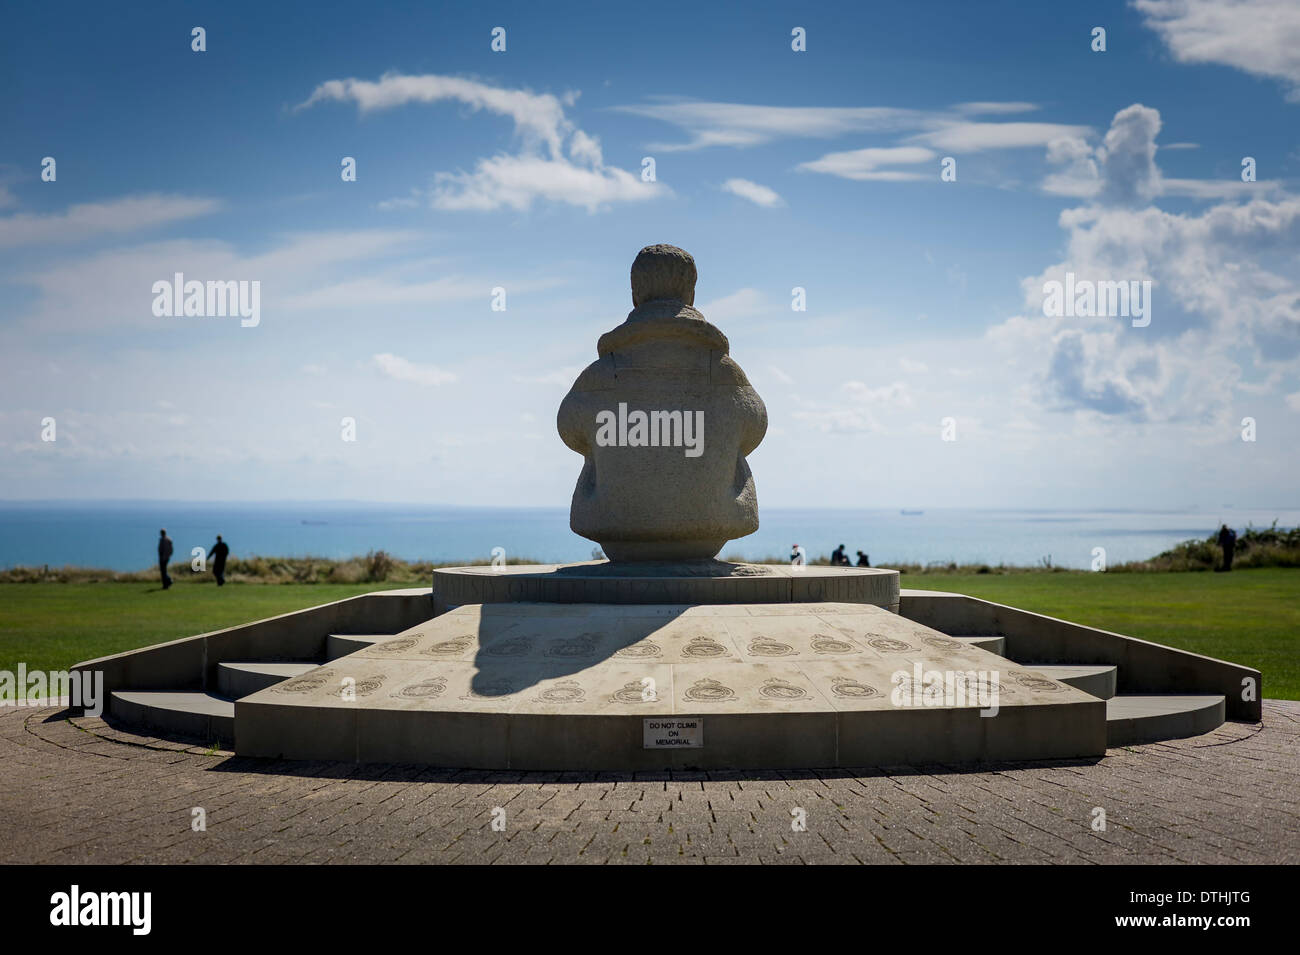 Airman statue in Battle of Britain Memorial site at Capel-le-Ferne near Dover Kent UK - Stock Image